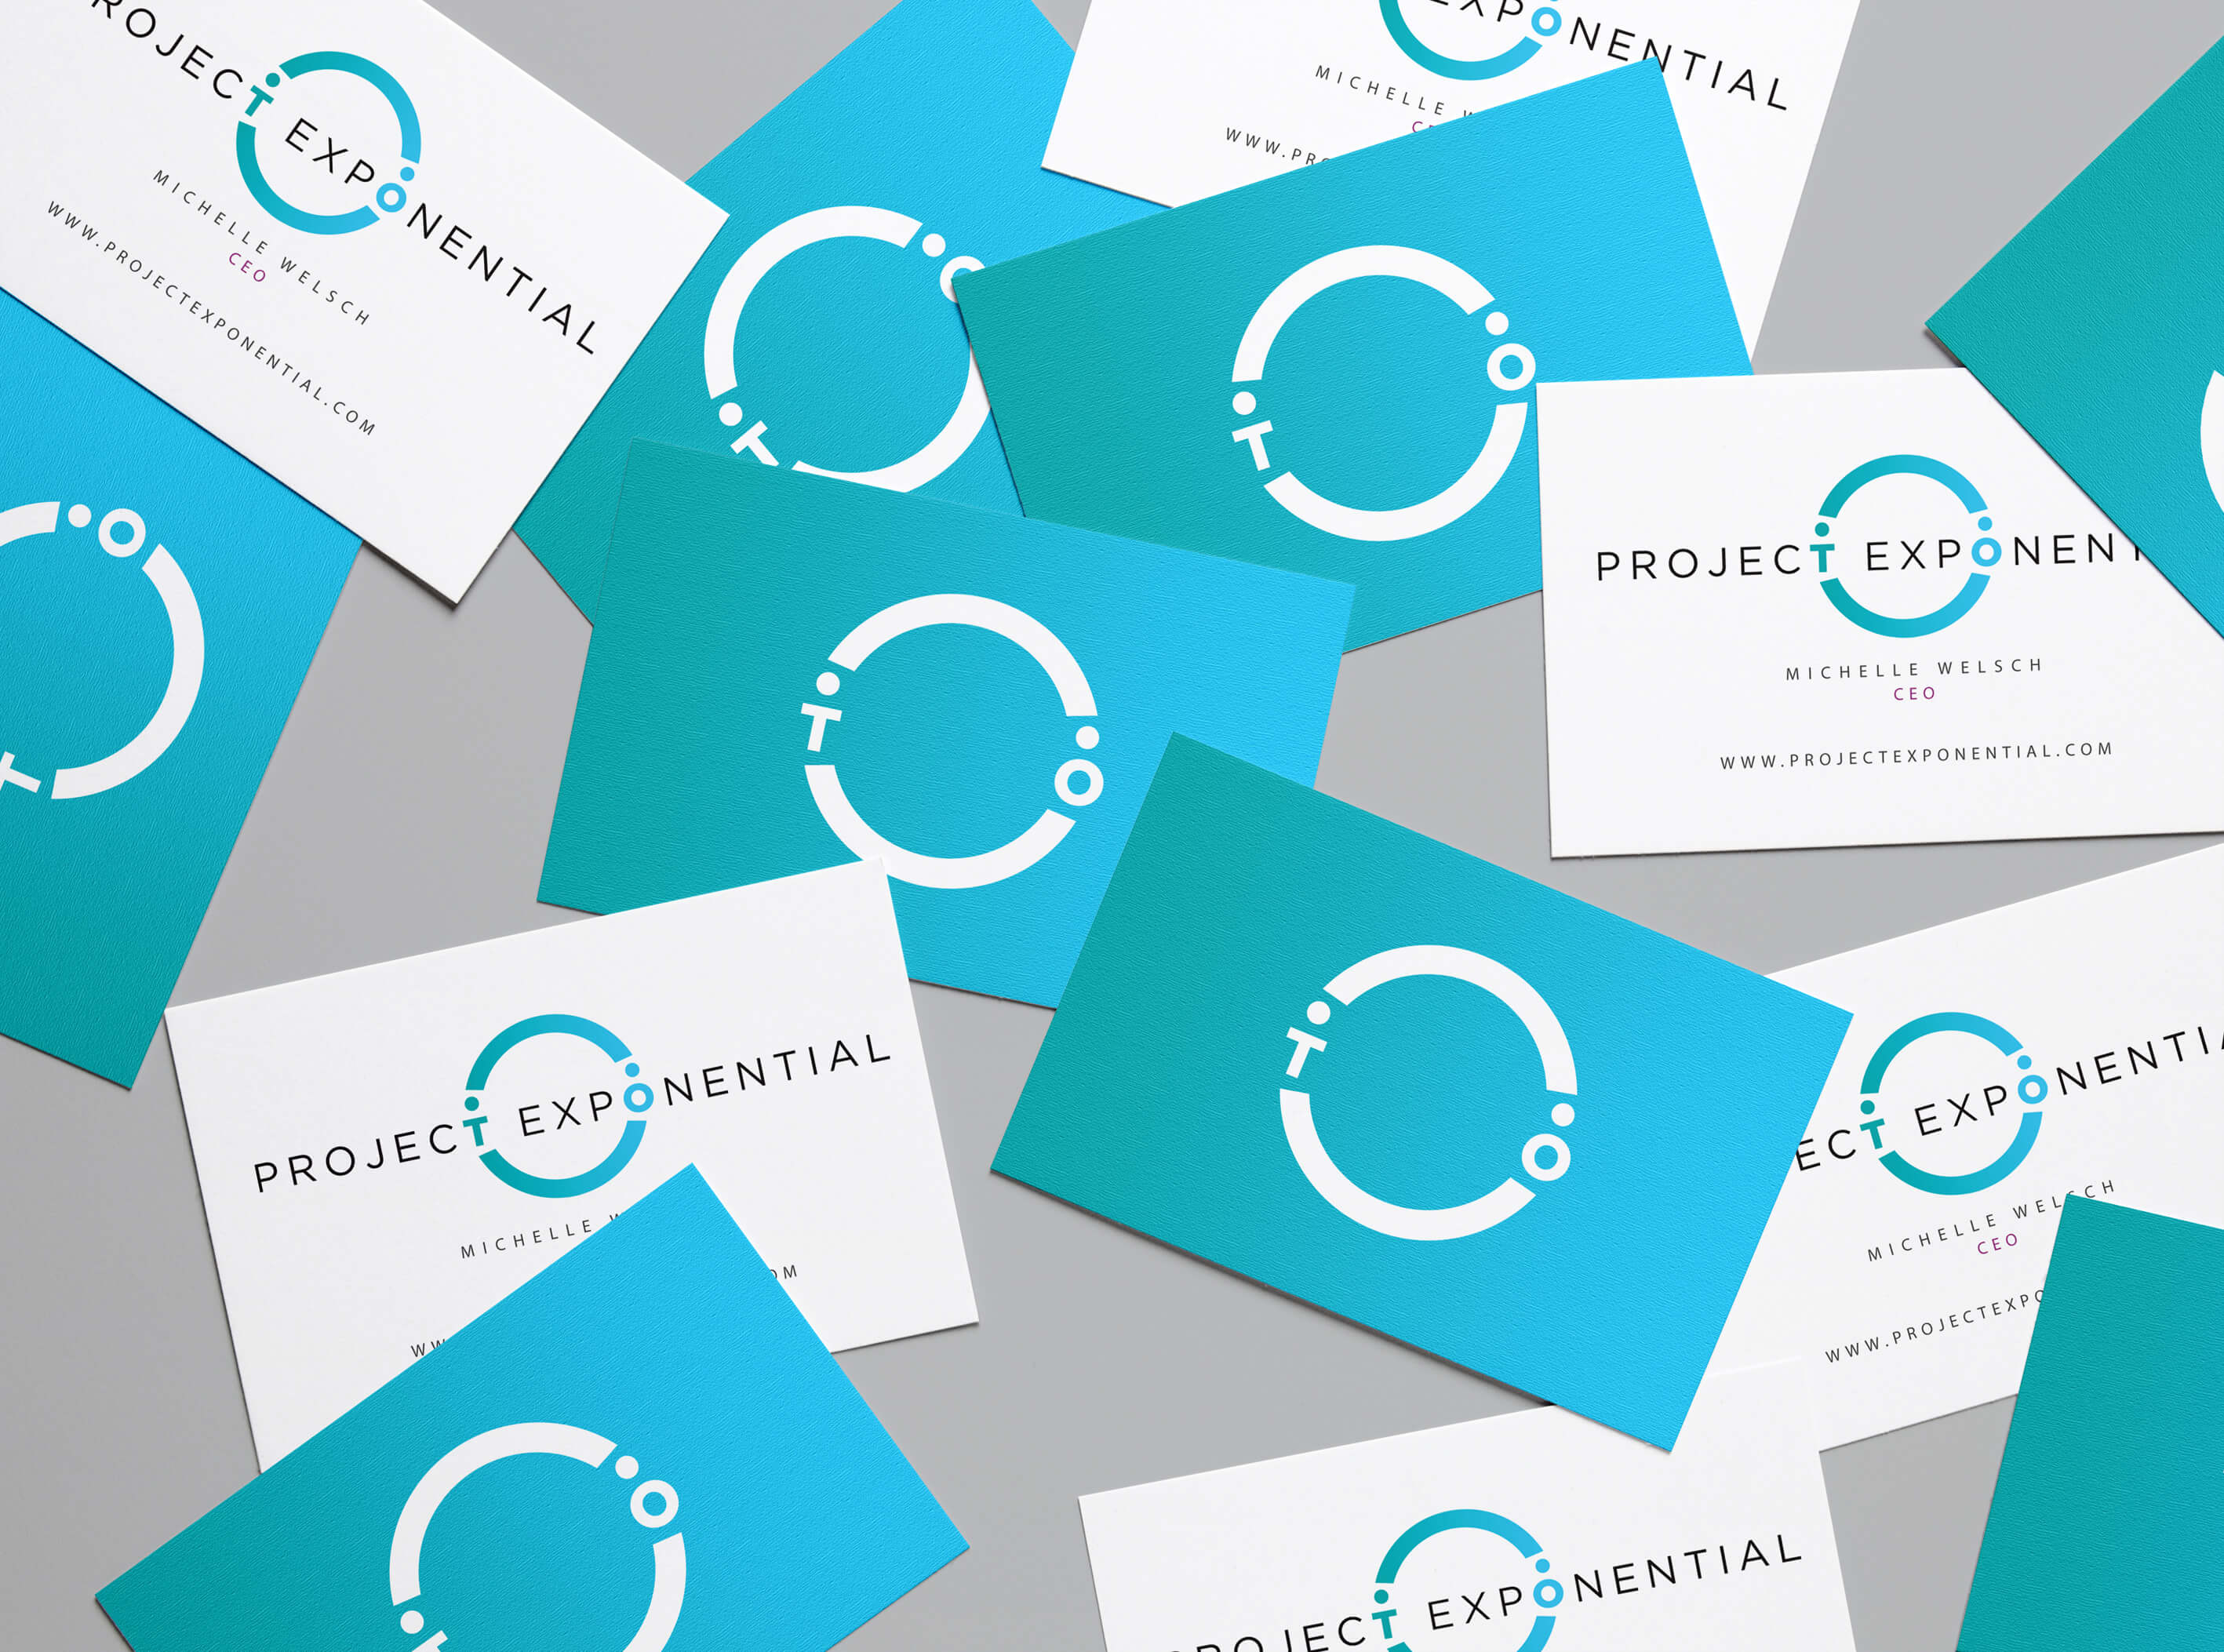 Project Exponential showcase